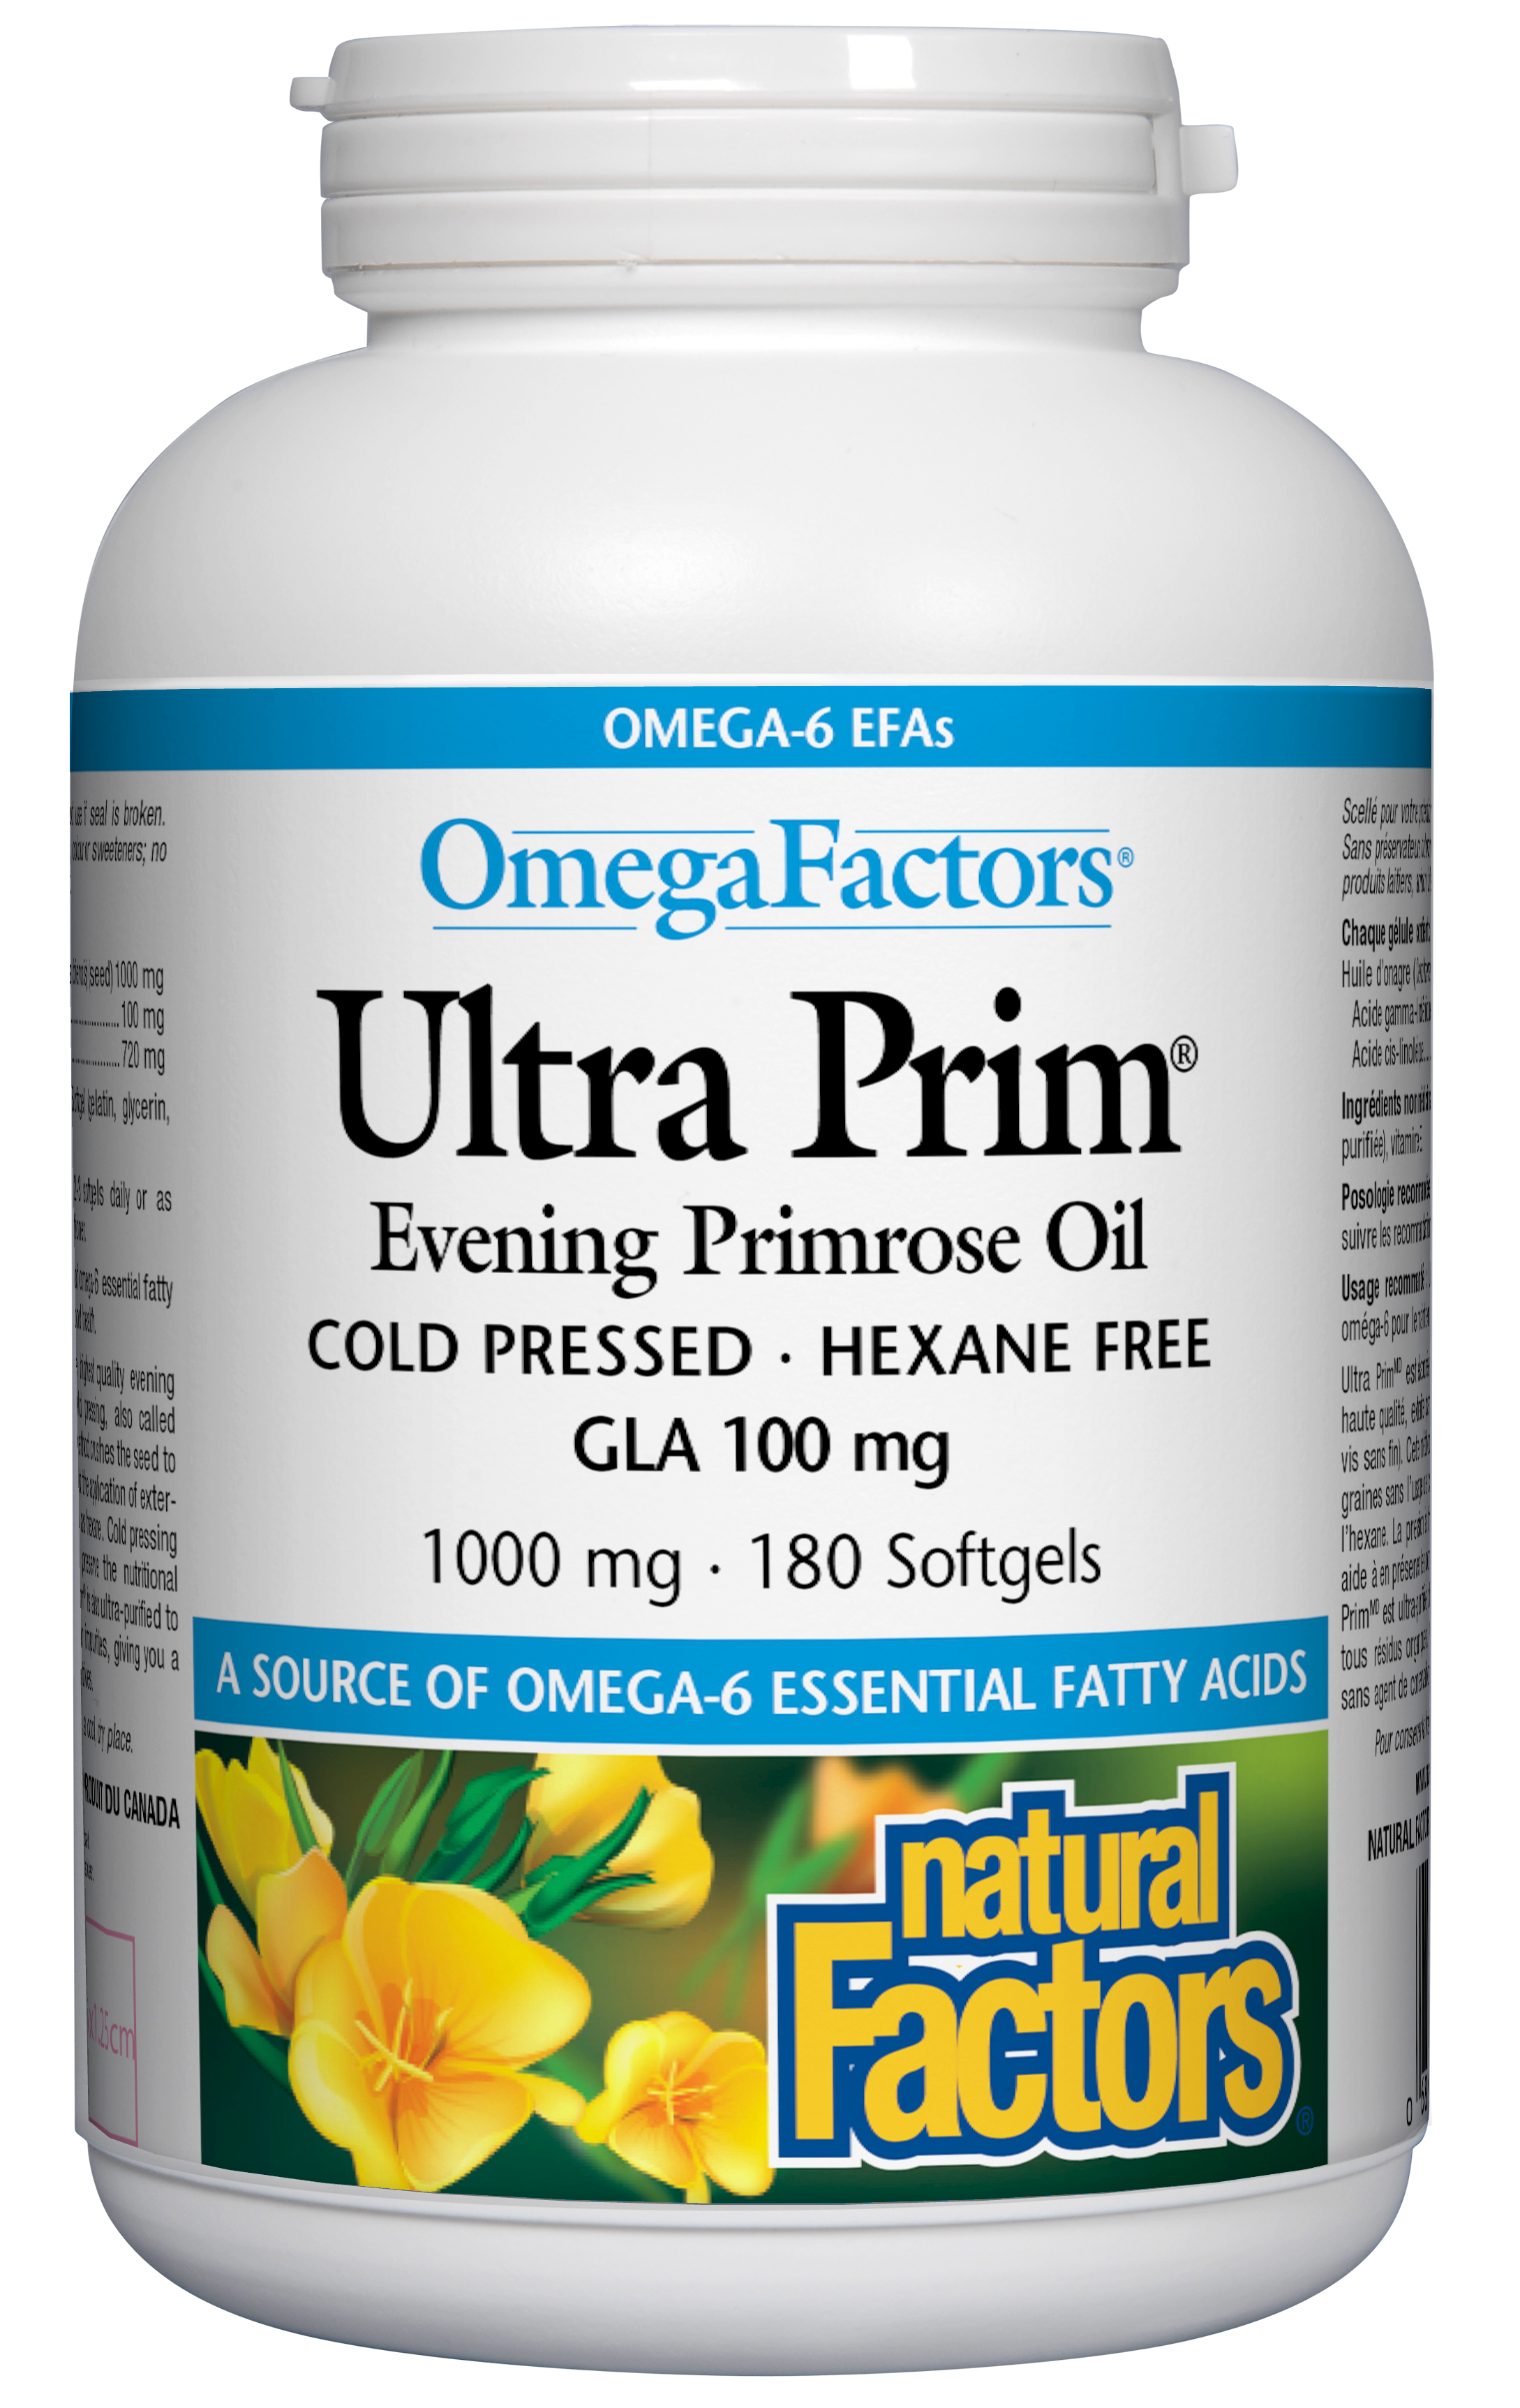 Natural Factors OmegaFactors Ultra Prim Evening Primrose Oil 1000mg 180 Softgels